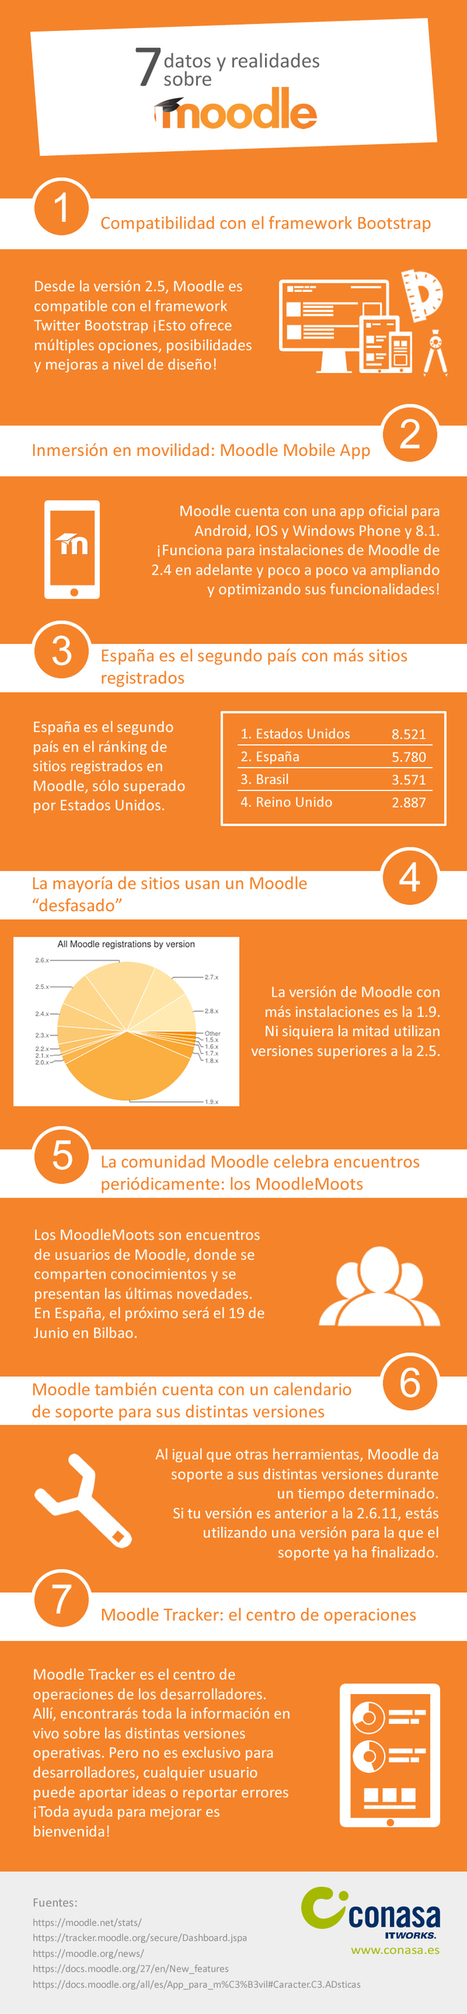 7 datos y realidades sobre Moodle que es interesante conocer | Educación y TIC | Scoop.it